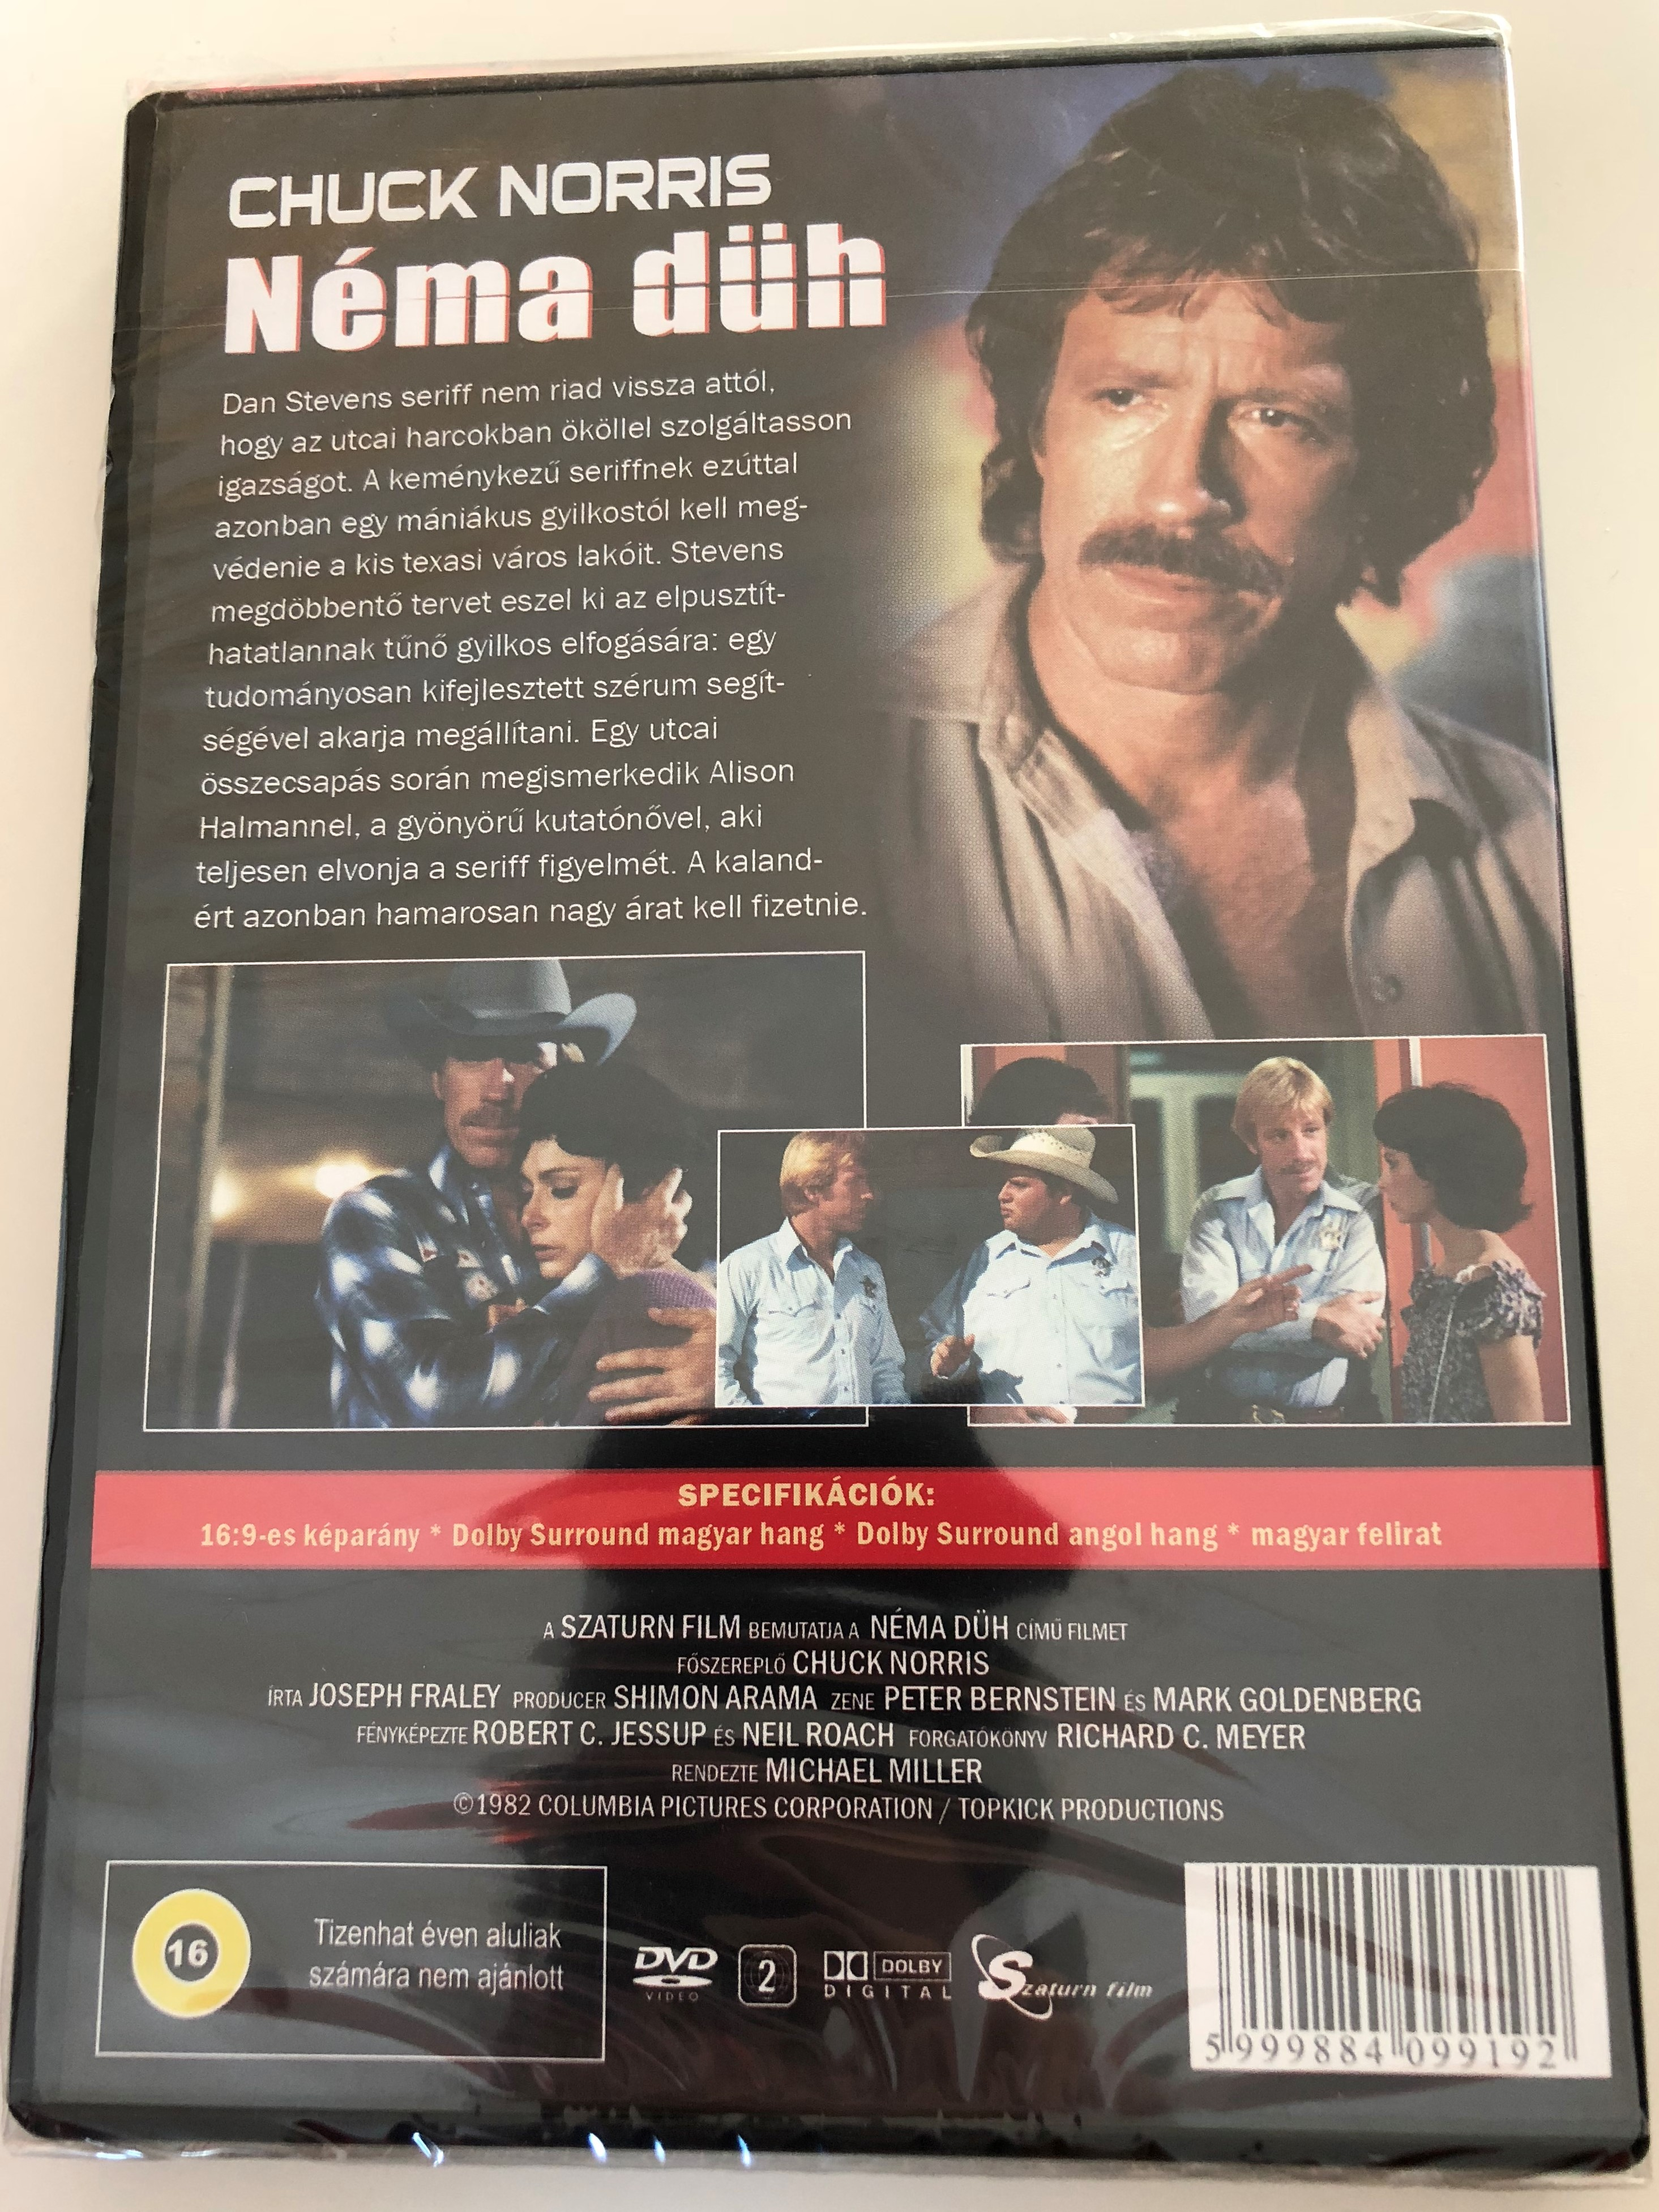 n-ma-d-h-dvd-1982-silent-rage-directed-by-michael-miller-starring-chuck-norris-toni-kalem-brian-libby-ron-silver-2-.jpg